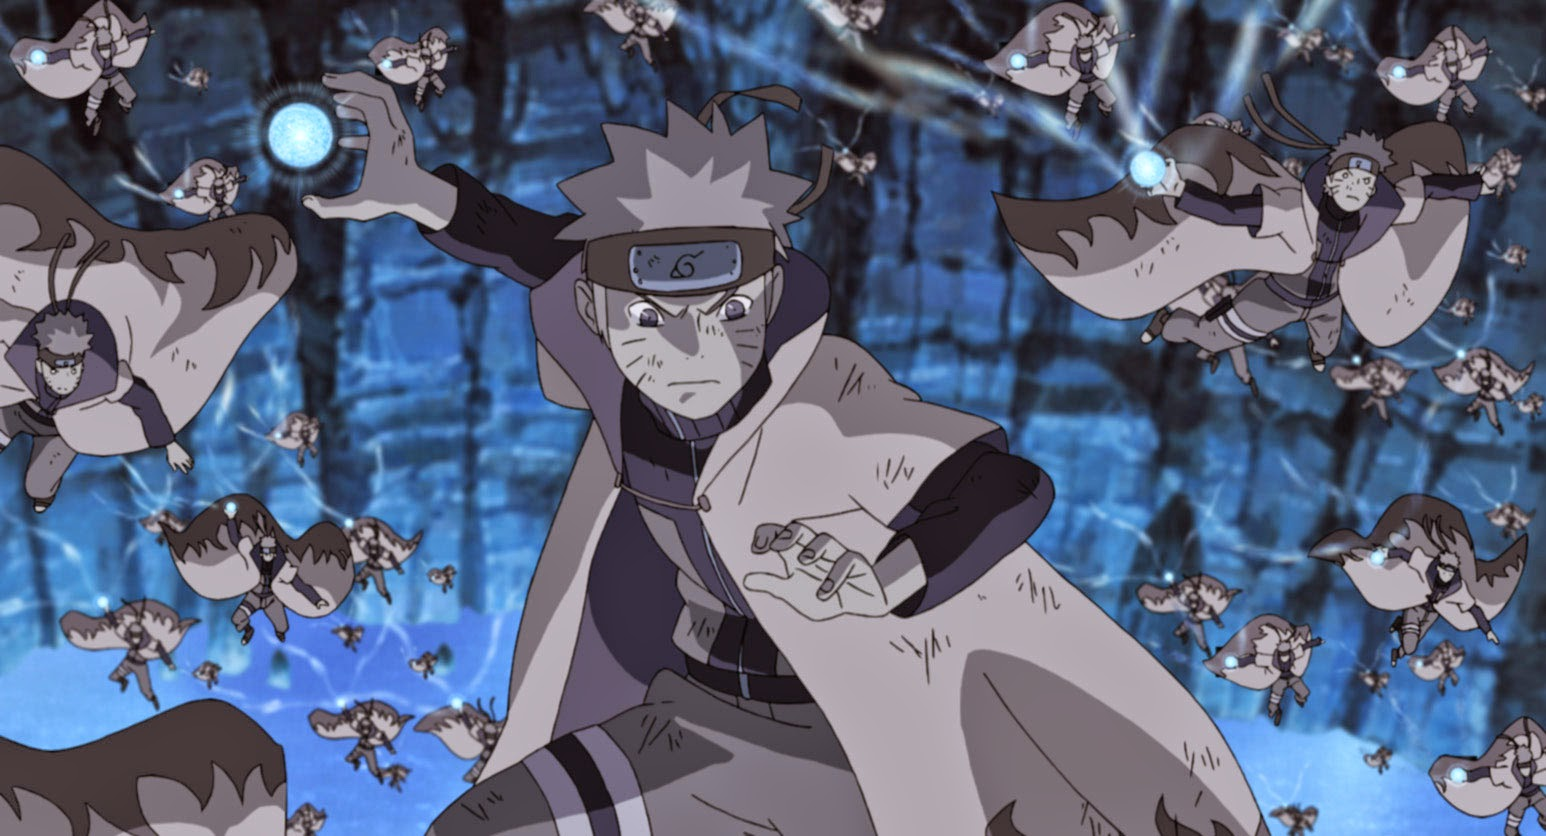 NARUTO, I FILM IN ITALIANO AL CINEMA PER LUCKY RED DA DICEMBRE 2014